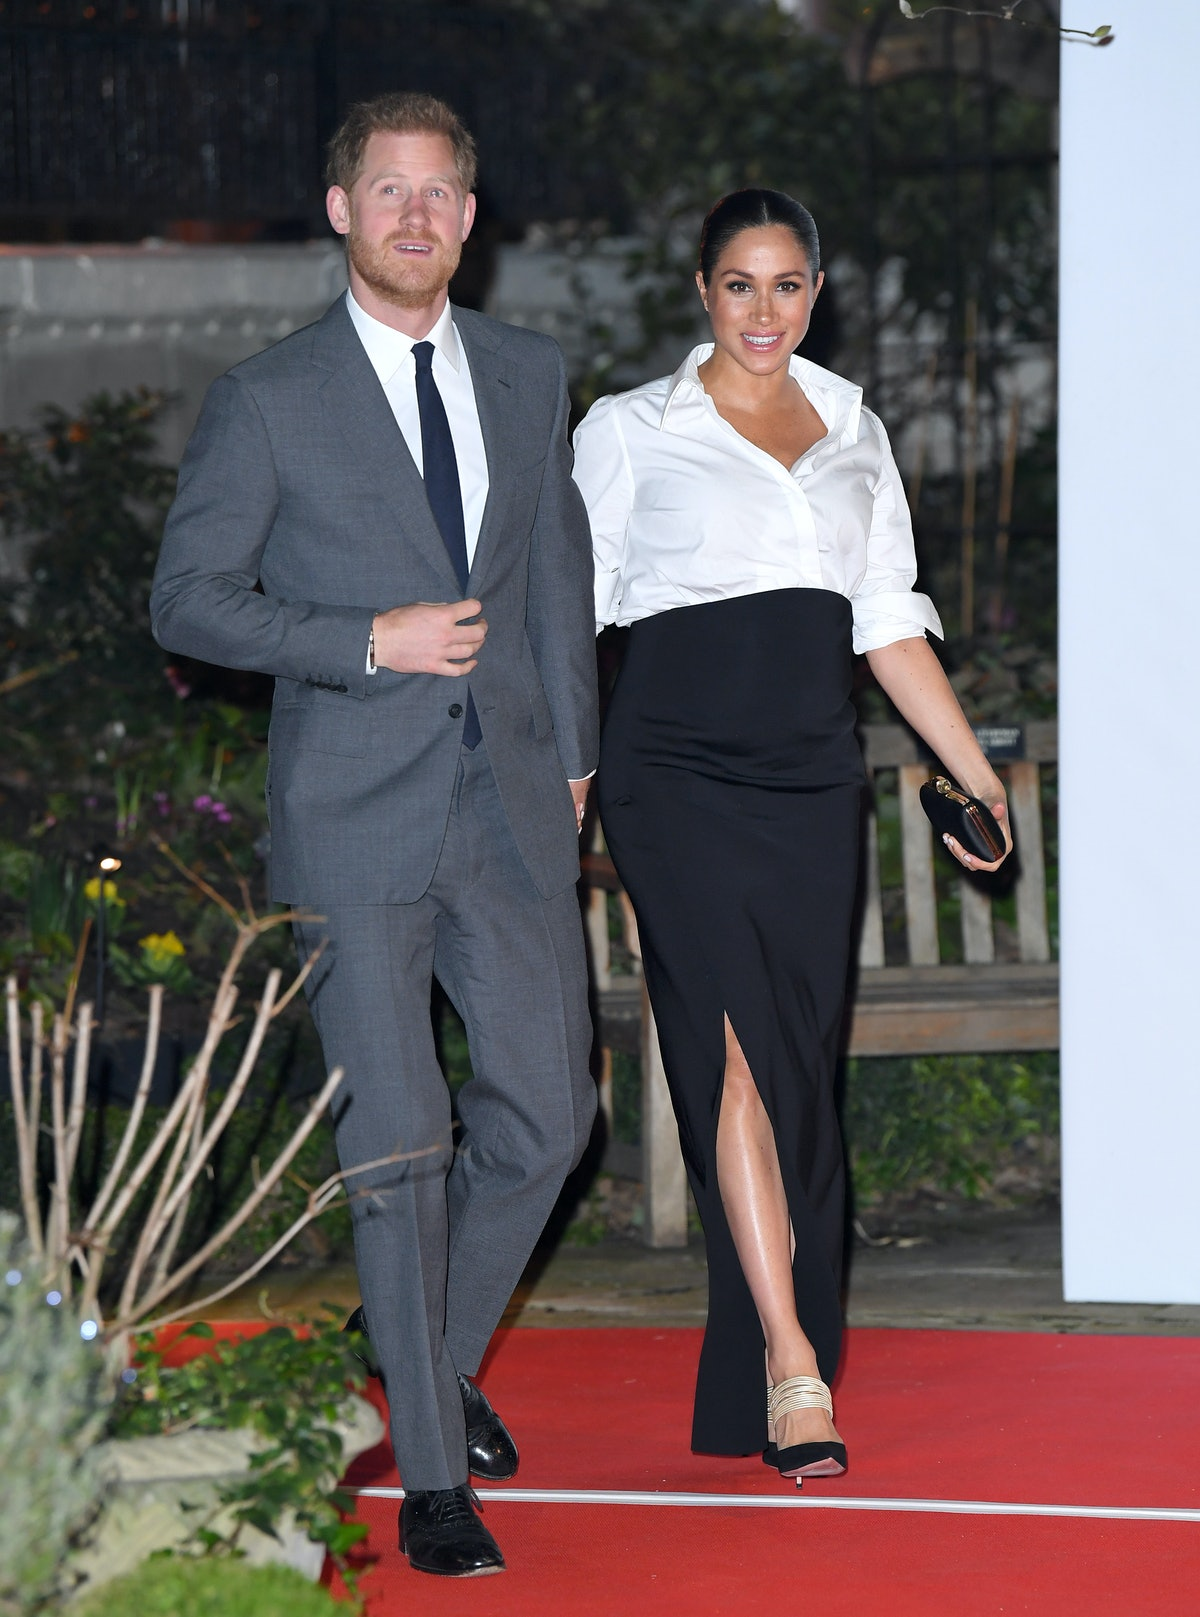 Meghan Markle wore Givenchy's white button-down shirt and black maxi skirt in February 2019.